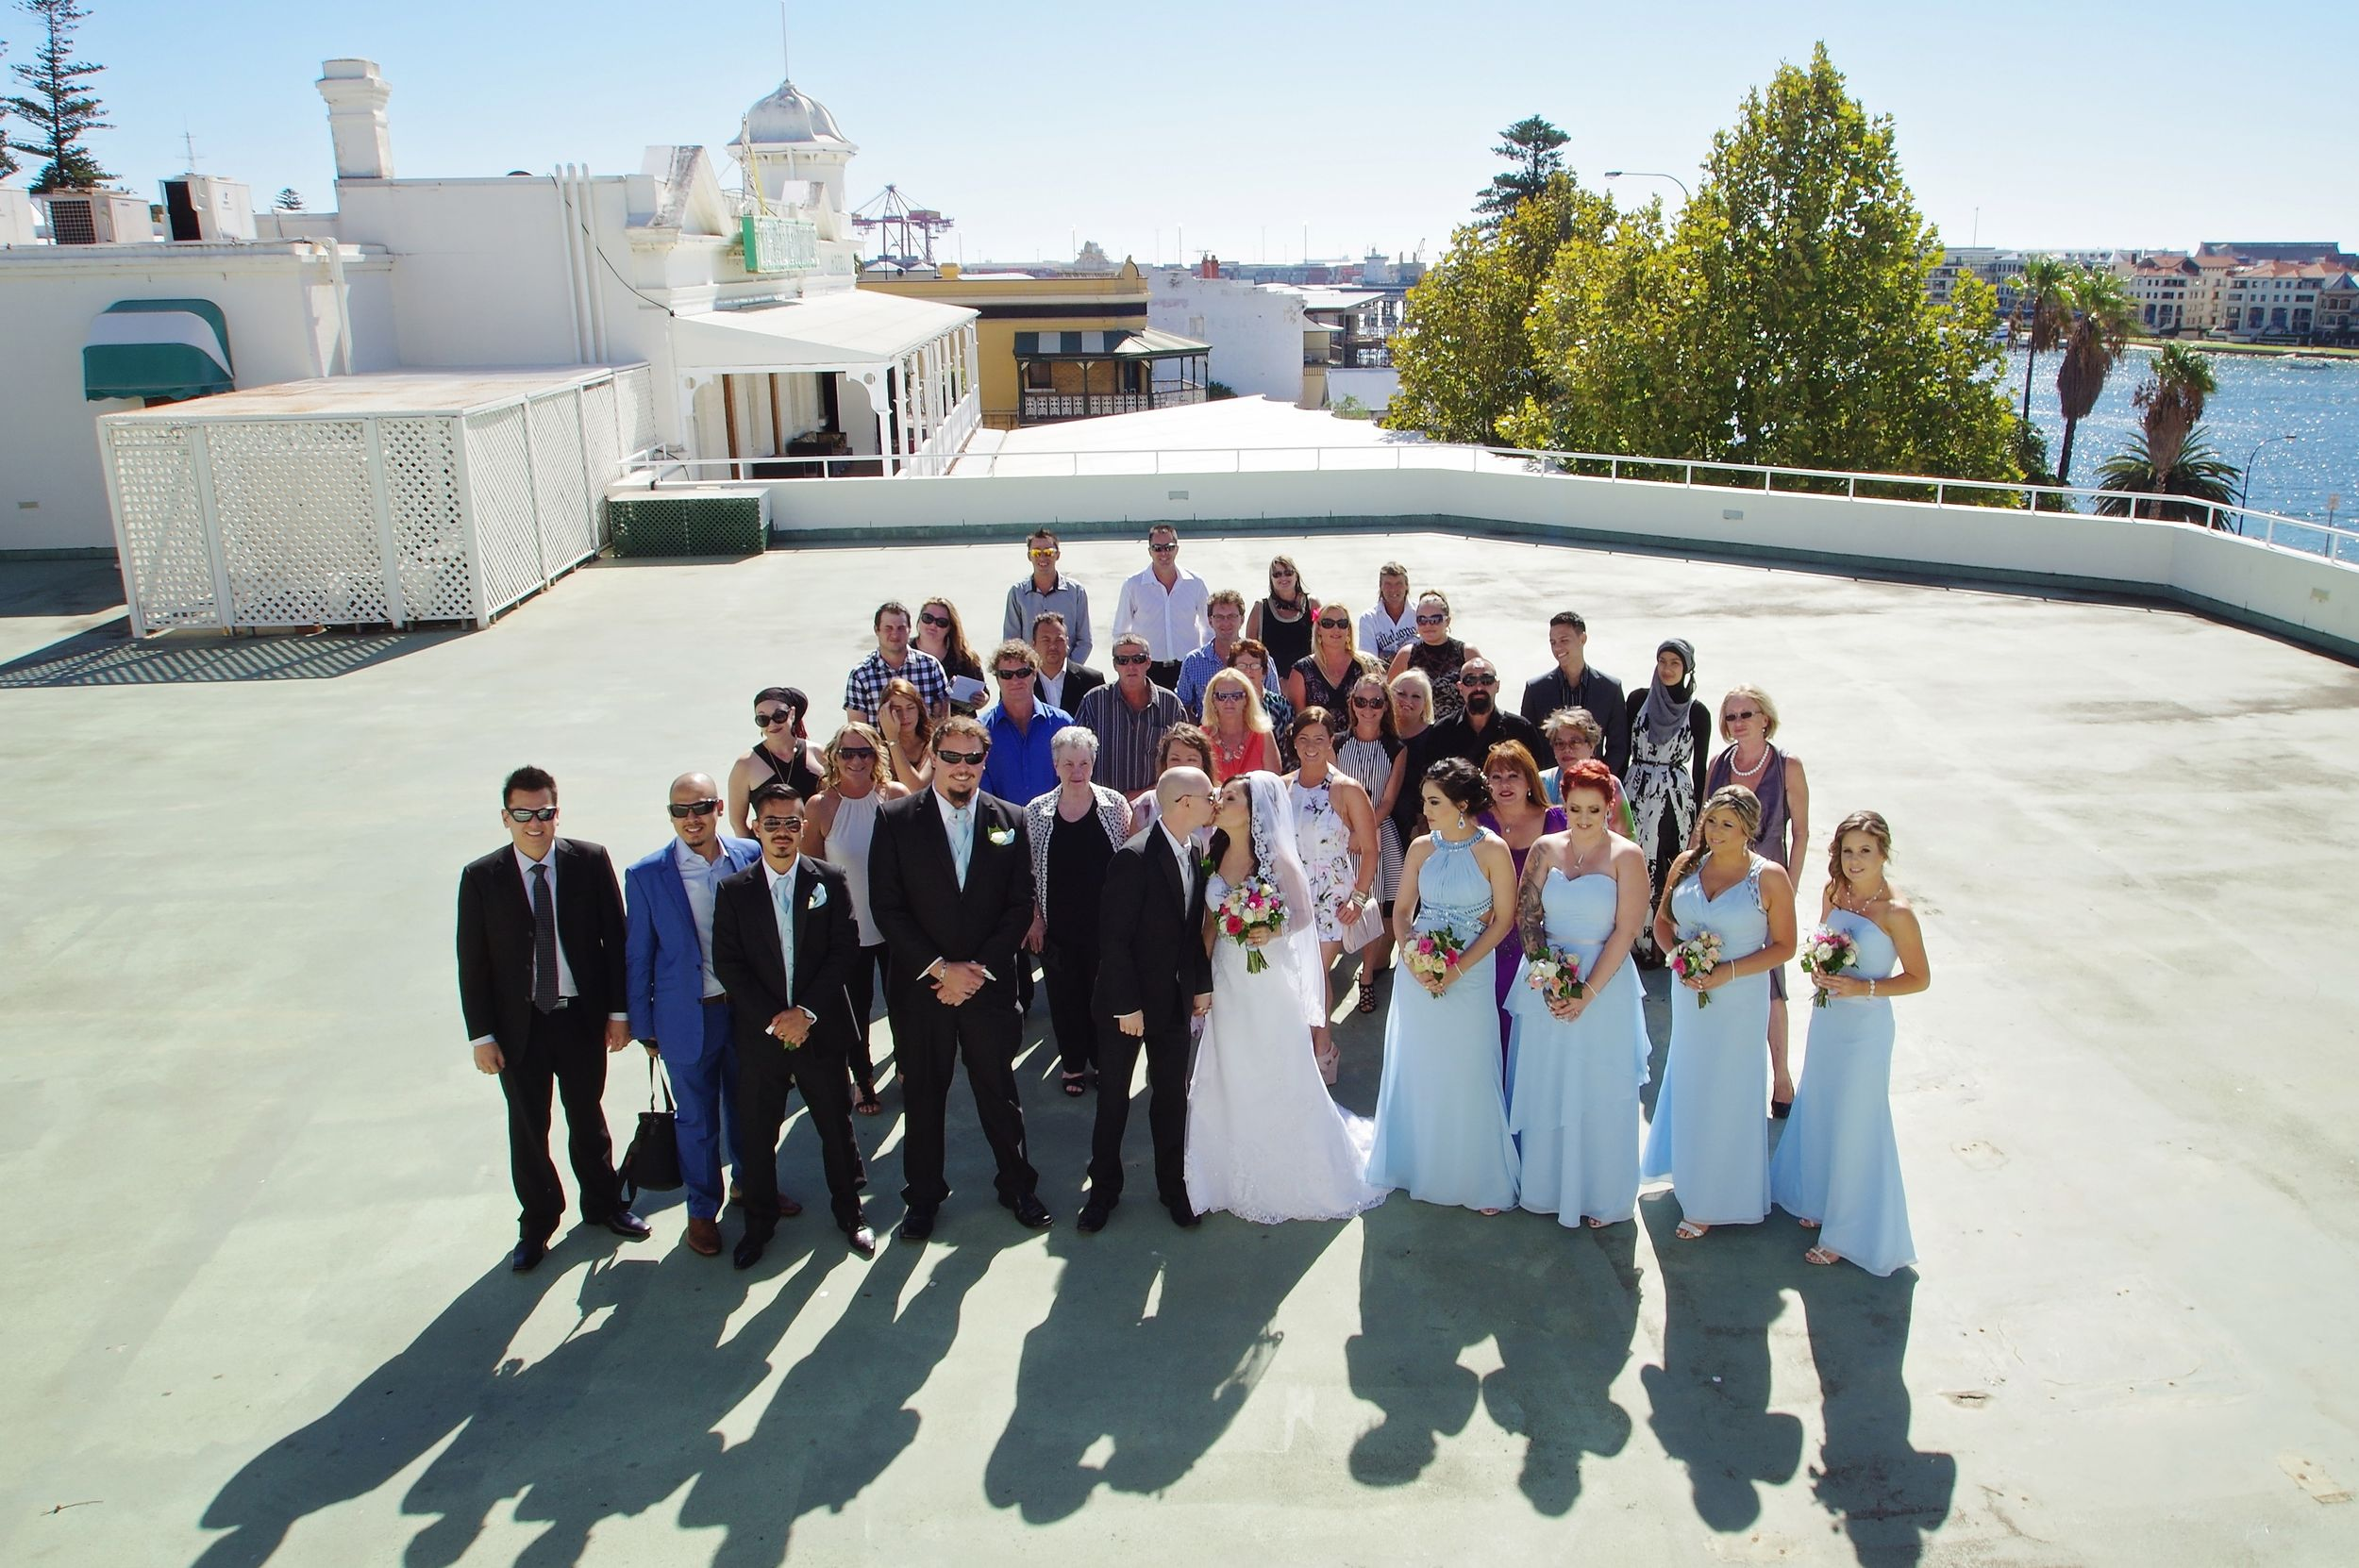 group shot of bride and groom and guests on rooftop